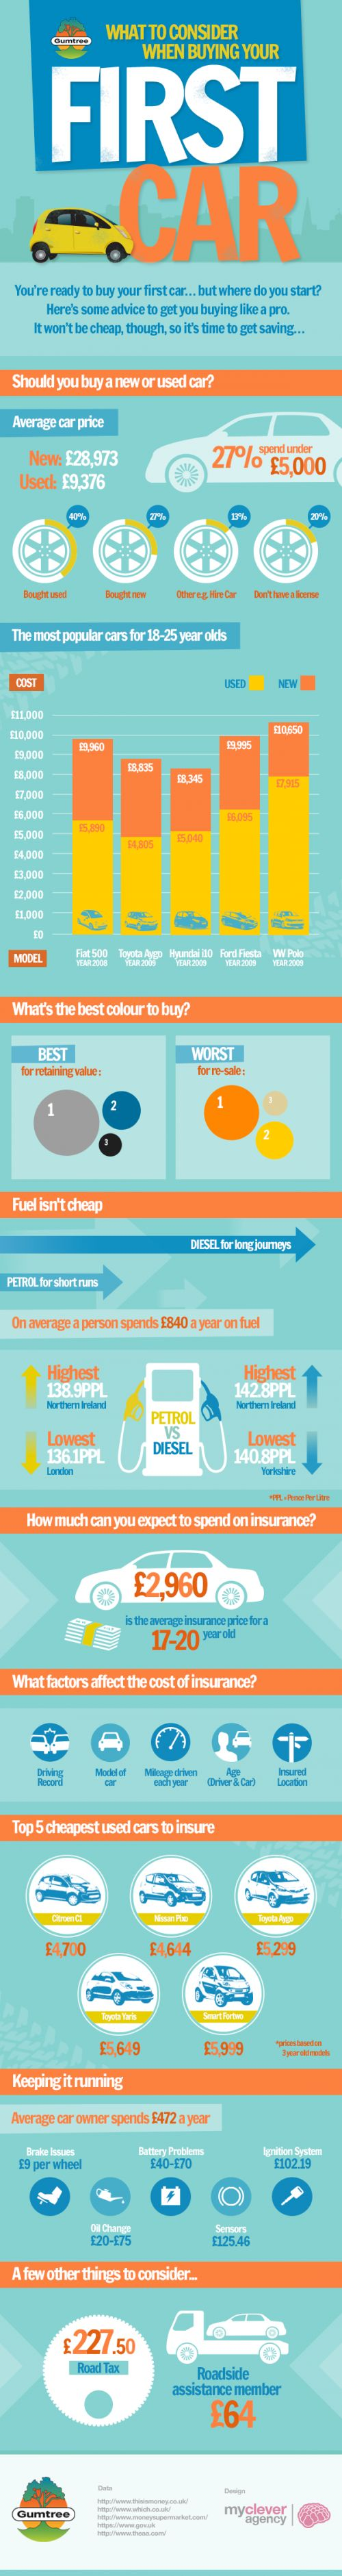 What to consider when buying your first car! – Infographic on http://www.bestinfographic.co.uk